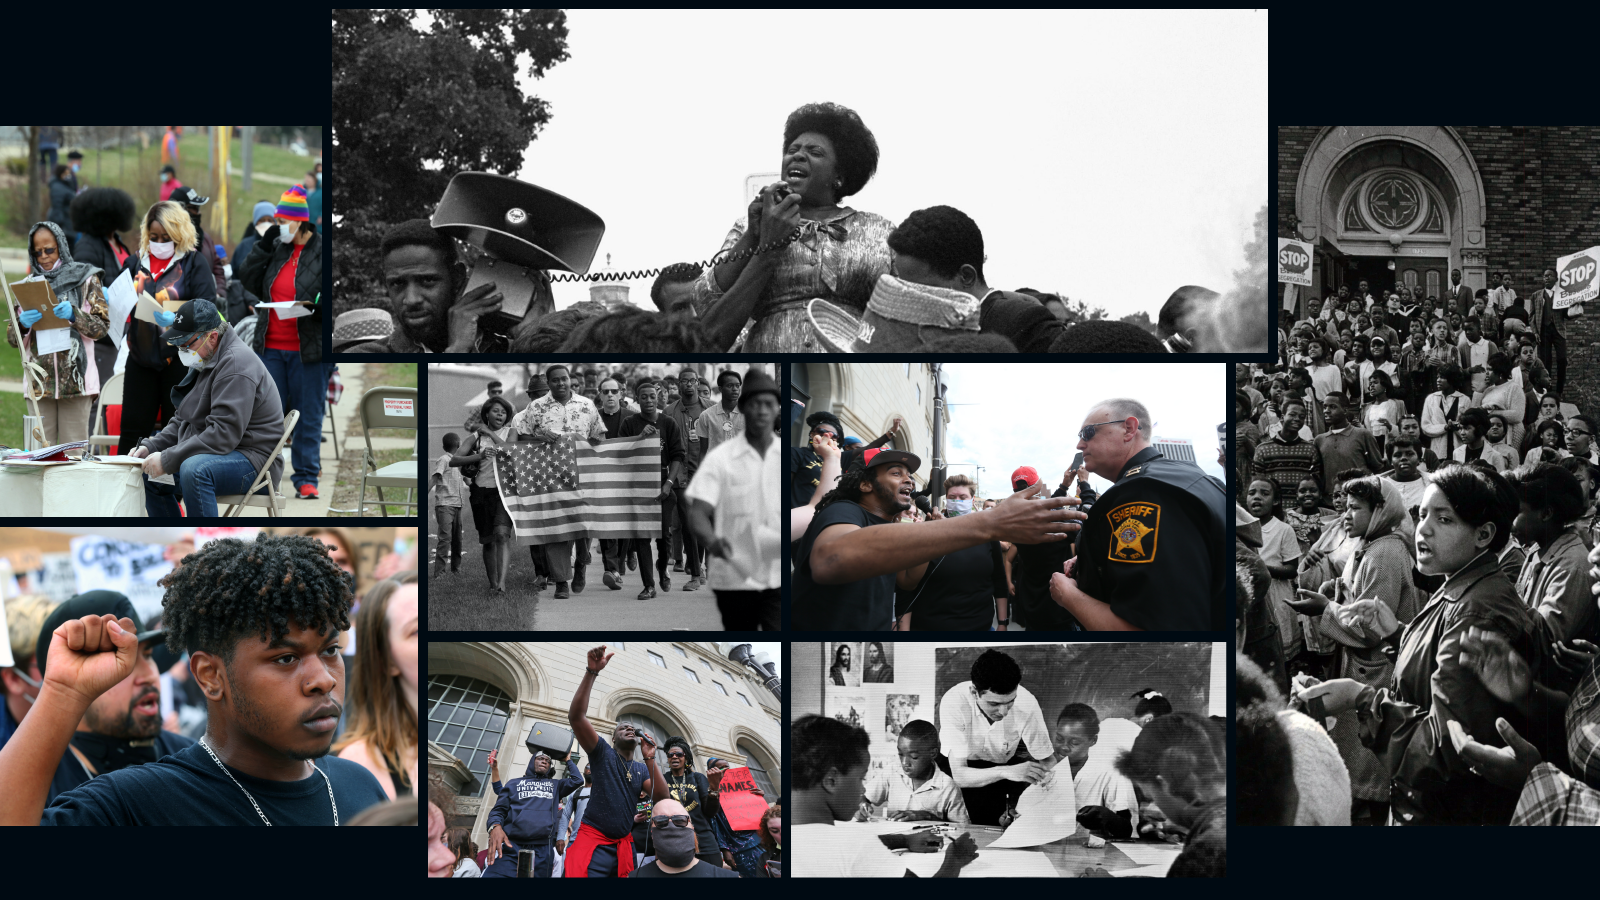 A look at the civil rights movements in Milwaukee from the 1960s and today.